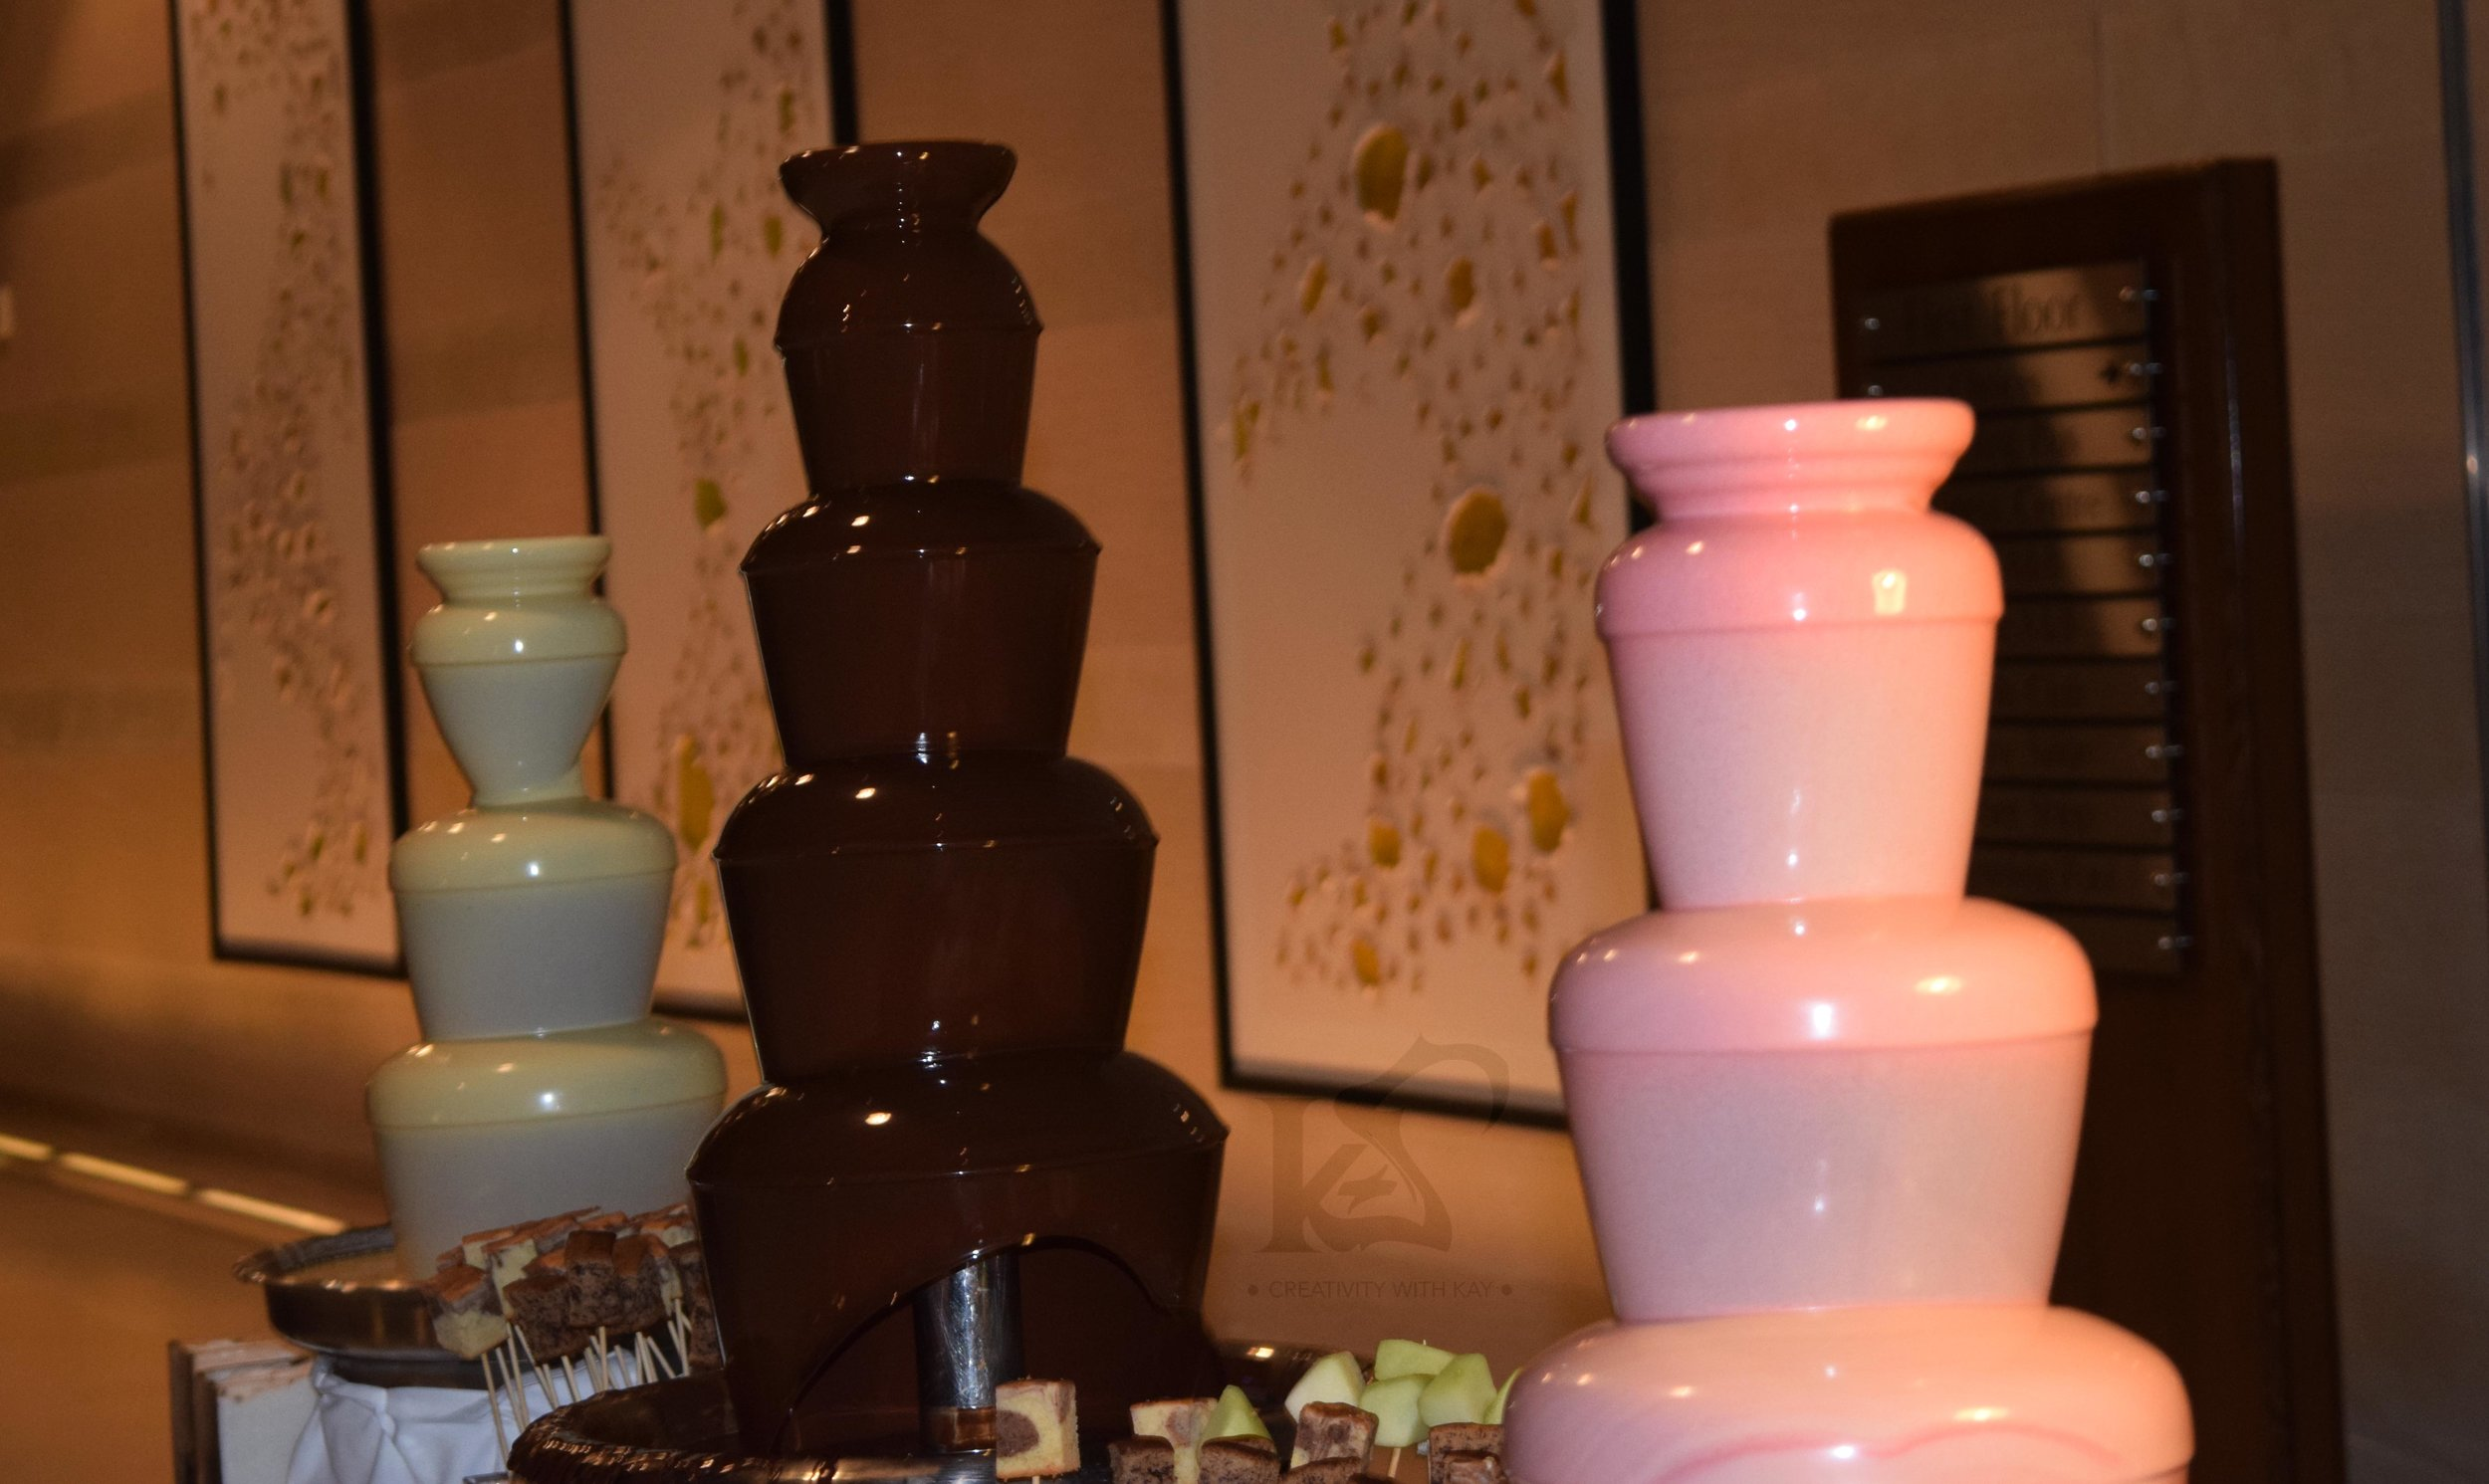 Such delicious looking chocolate fountains!